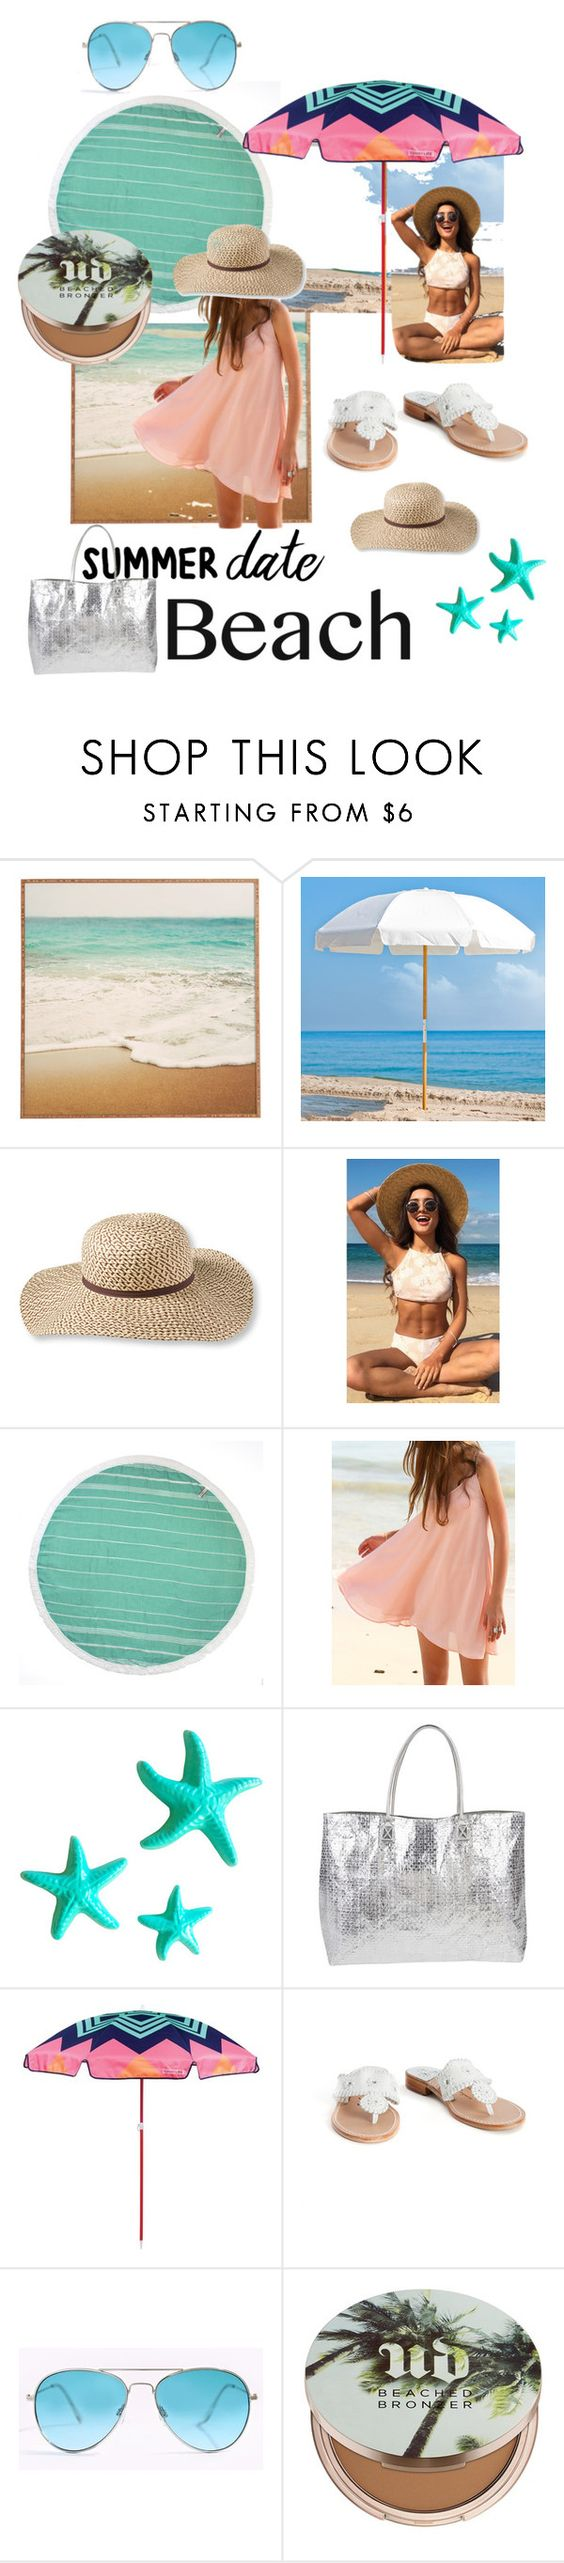 """""""Beach bae"""" by christawallace ❤ liked on Polyvore featuring Frankford, L.L.Bean, Dot & Bo, Armitage Avenue, Sunnylife, Palm Beach Sandals, Urban Decay, beach and summerdate"""